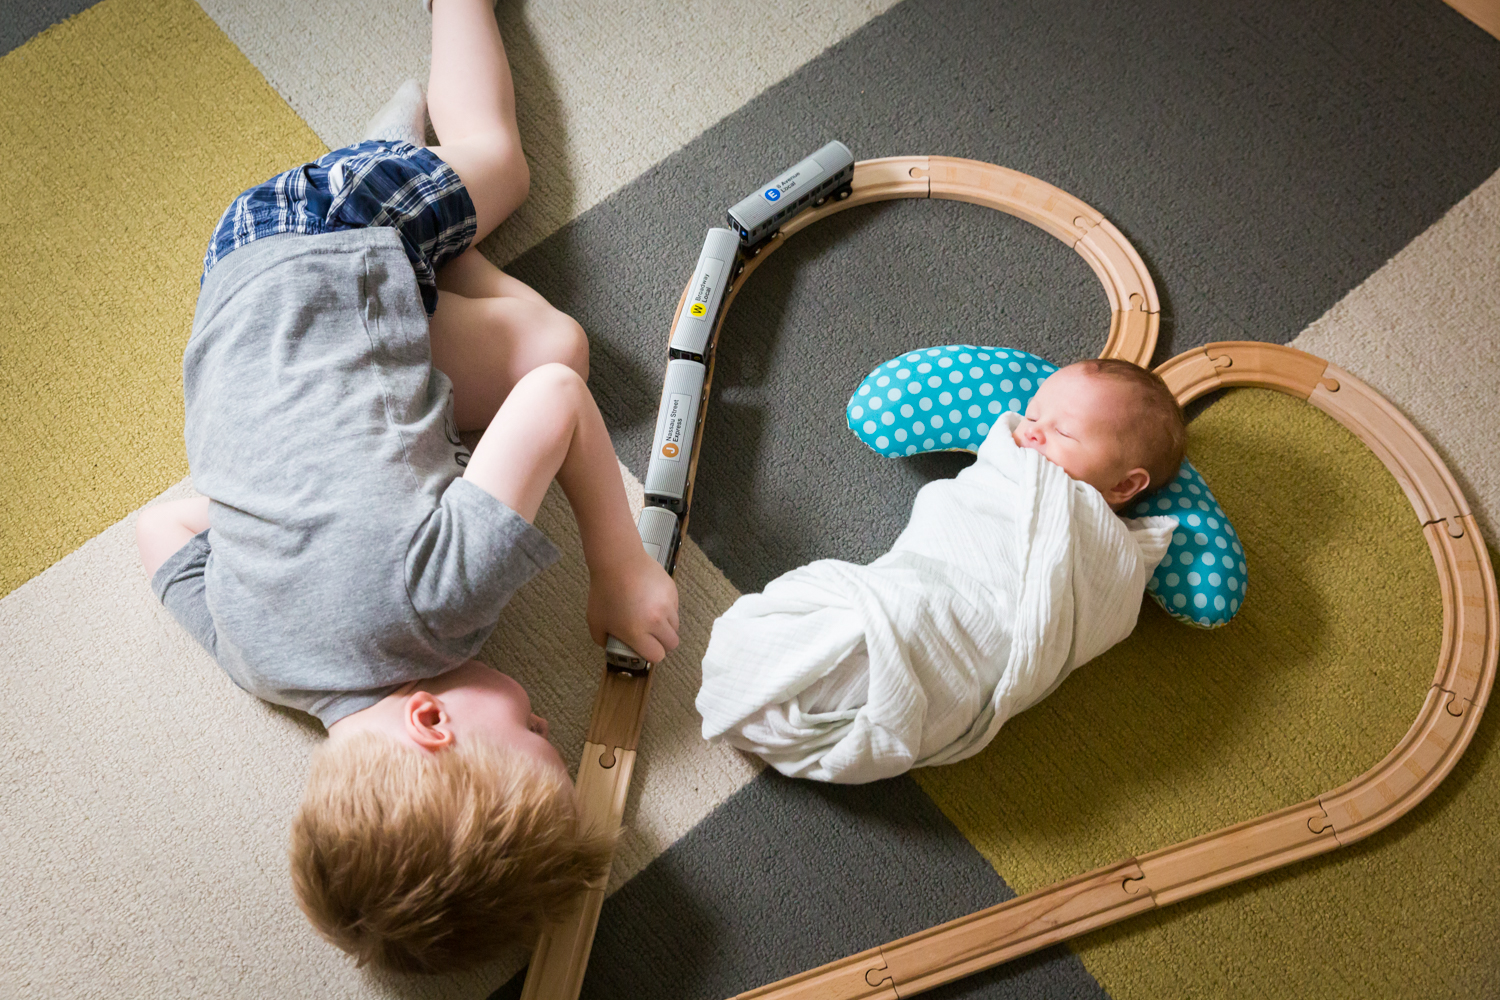 Little boy looking at newborn baby in middle of railroad toy set